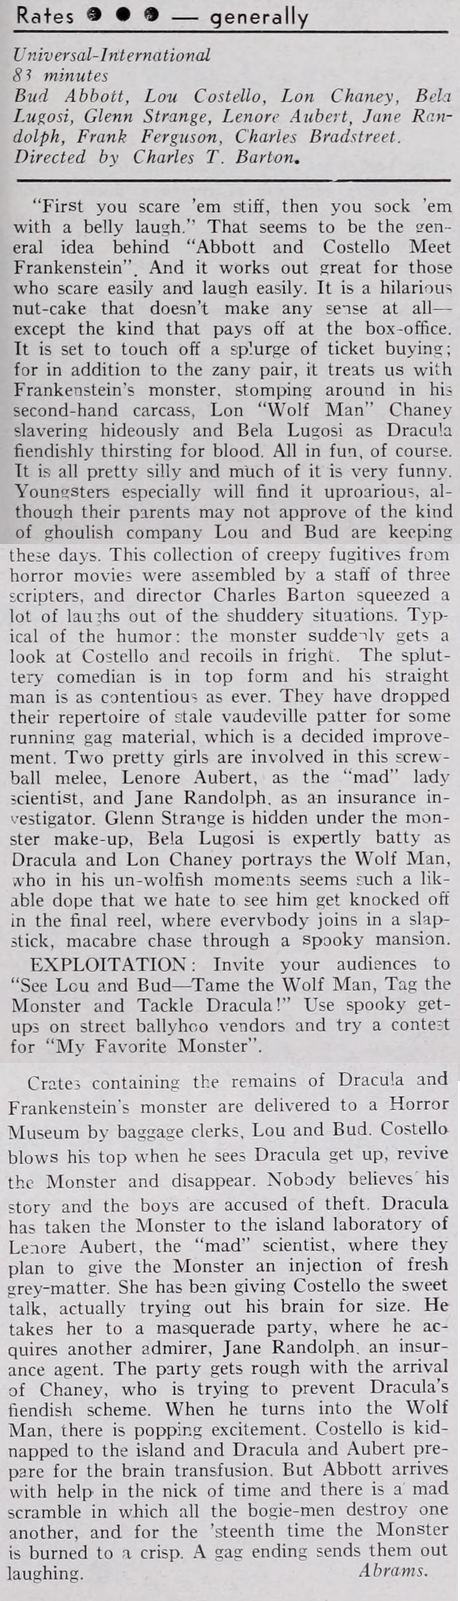 Abbott And Costello Meet Frankenstein Film Bulletin, July 5, 1948